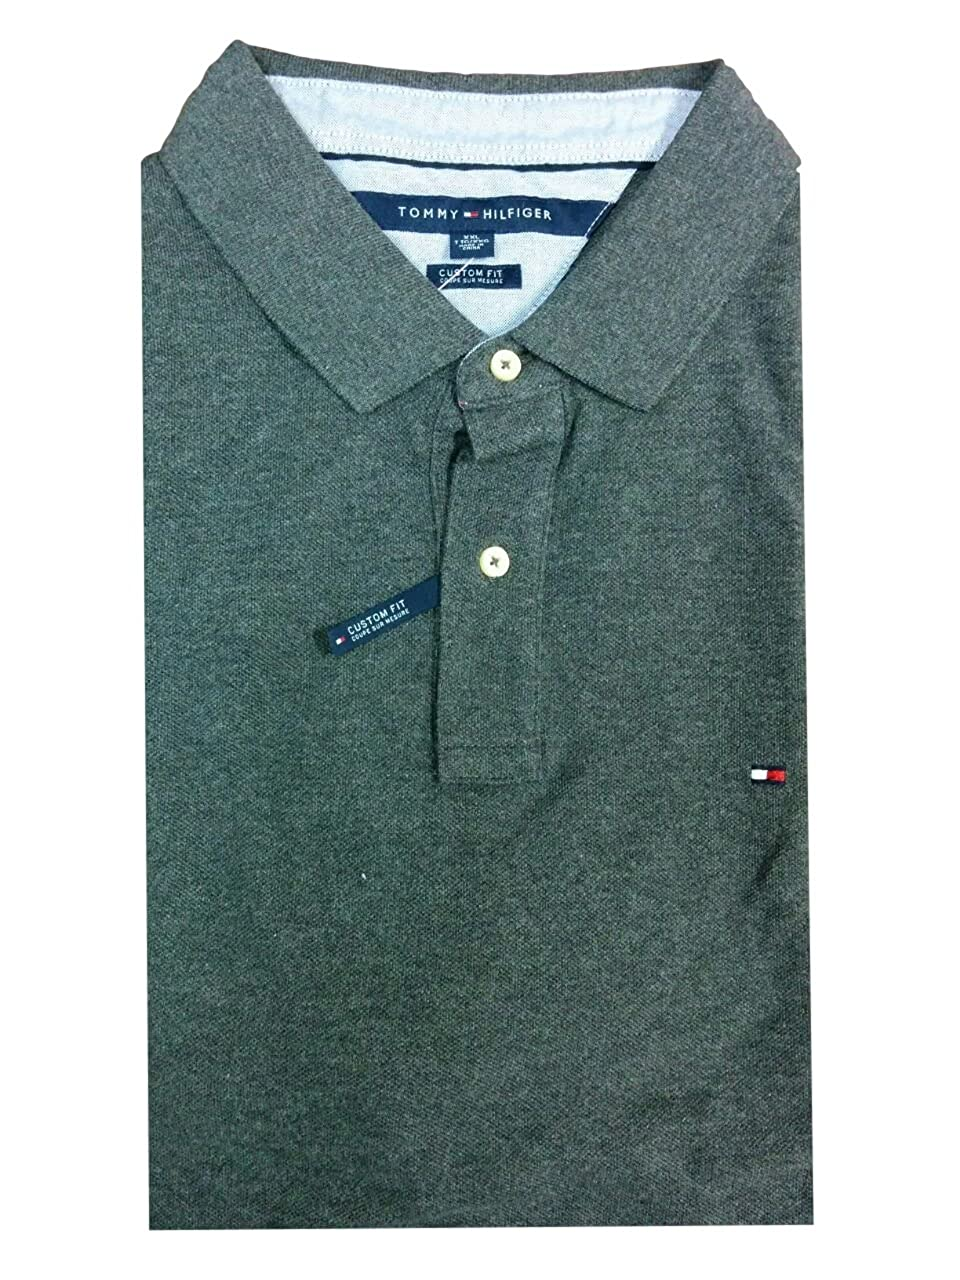 Tommy Hilfiger Mens Custom Fit Solid Color Polo Shirt THPS-4221-$P